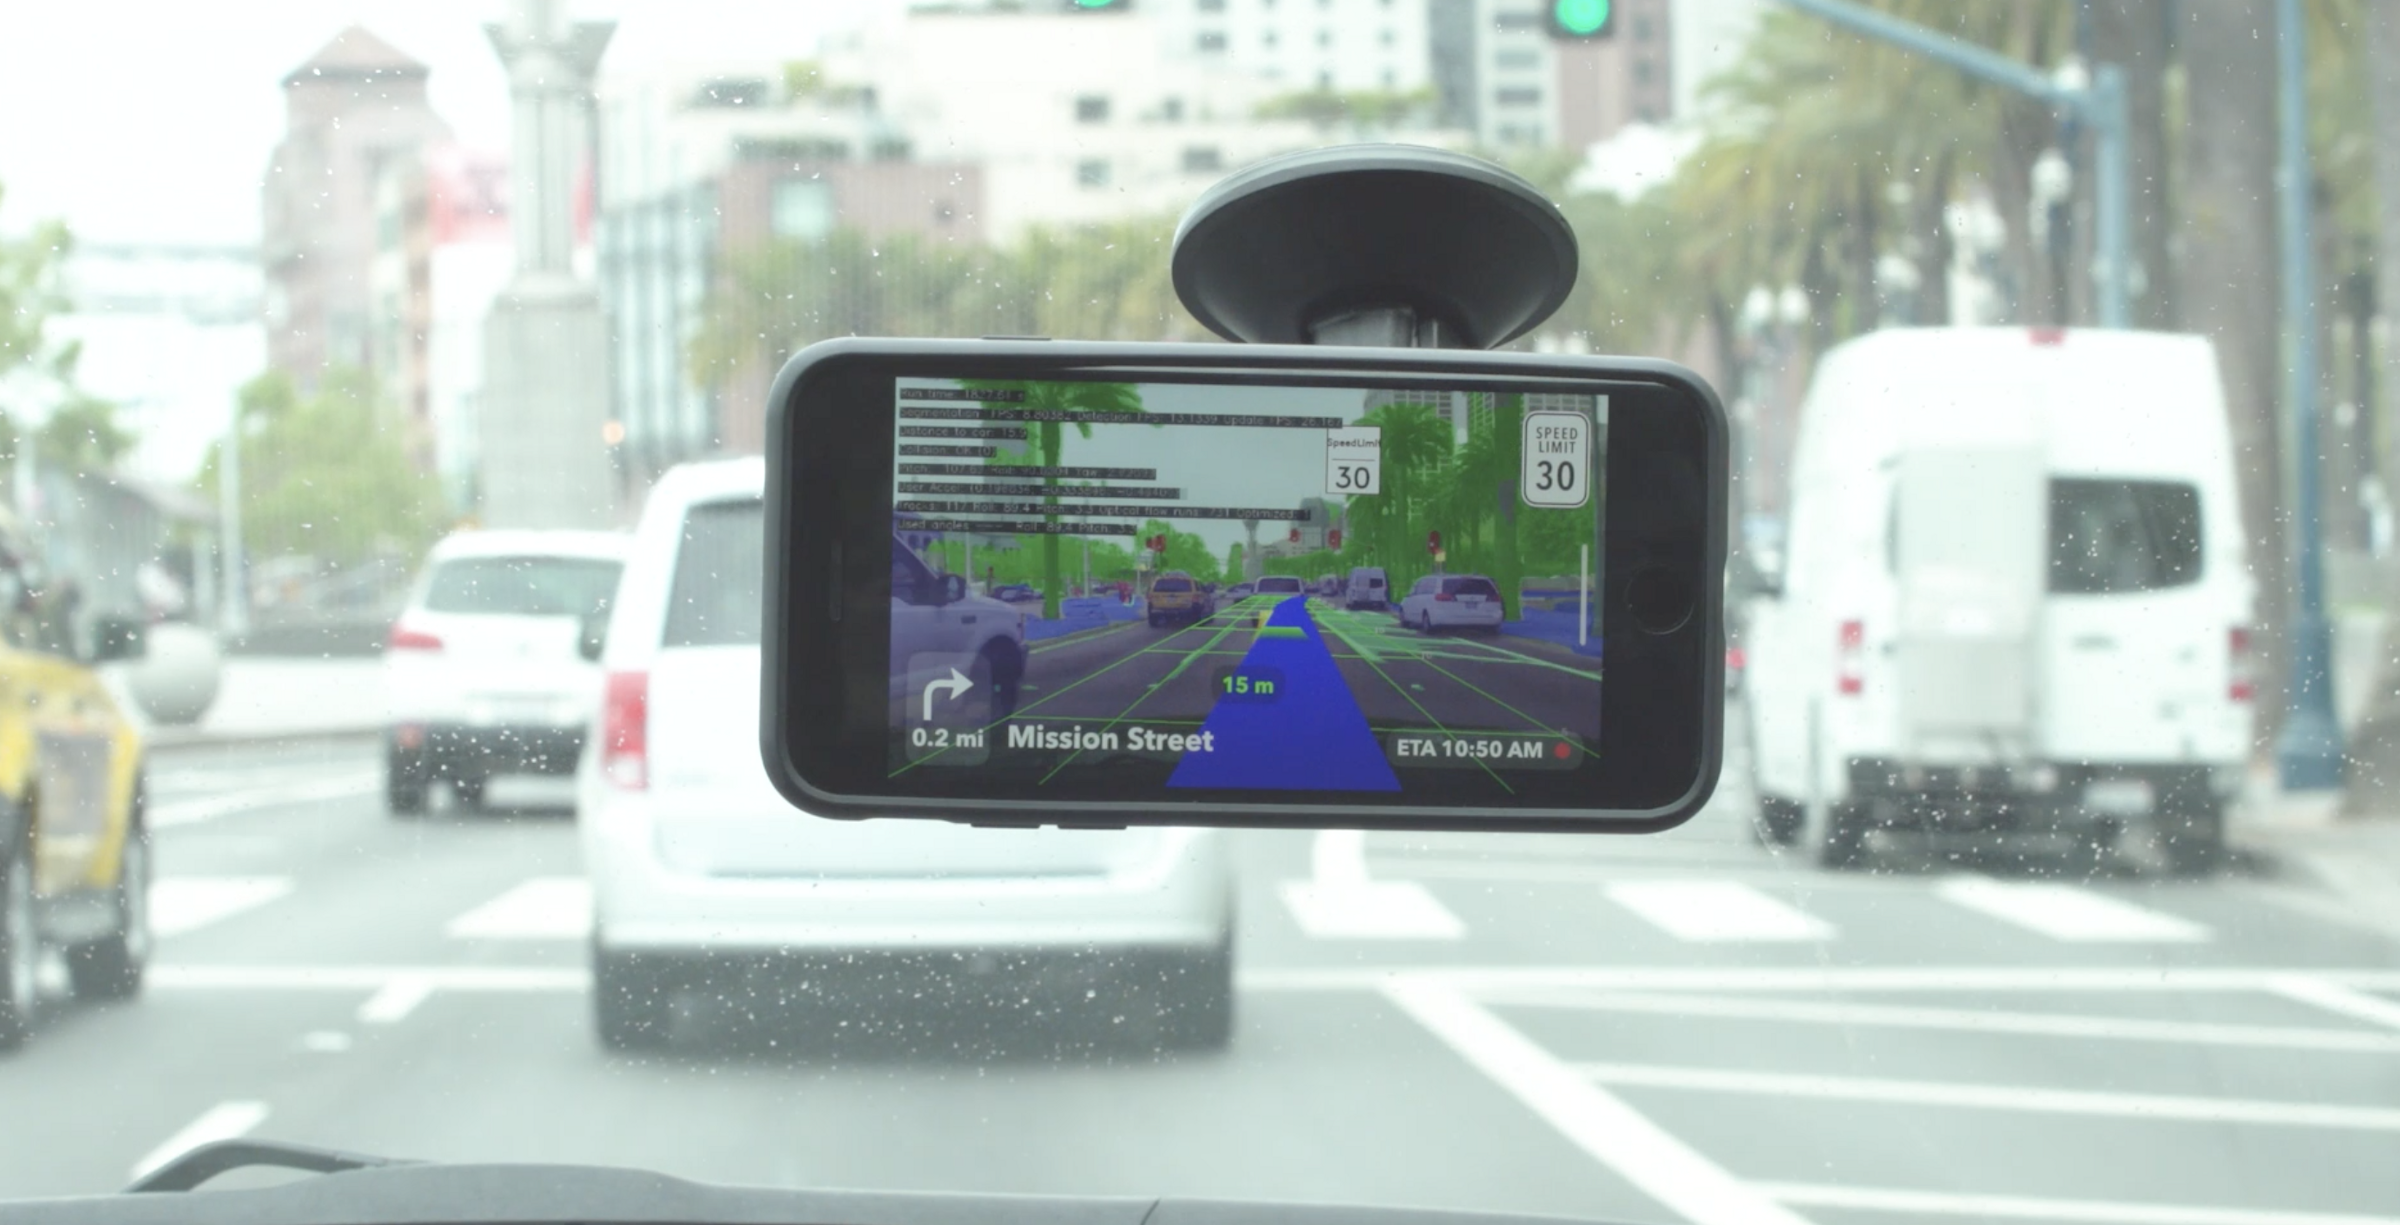 Equipped With Better Navigation Paired Augmented Reality And Ed By High Performance Computer Vision The Sdk Turns Mobile Camera Into A